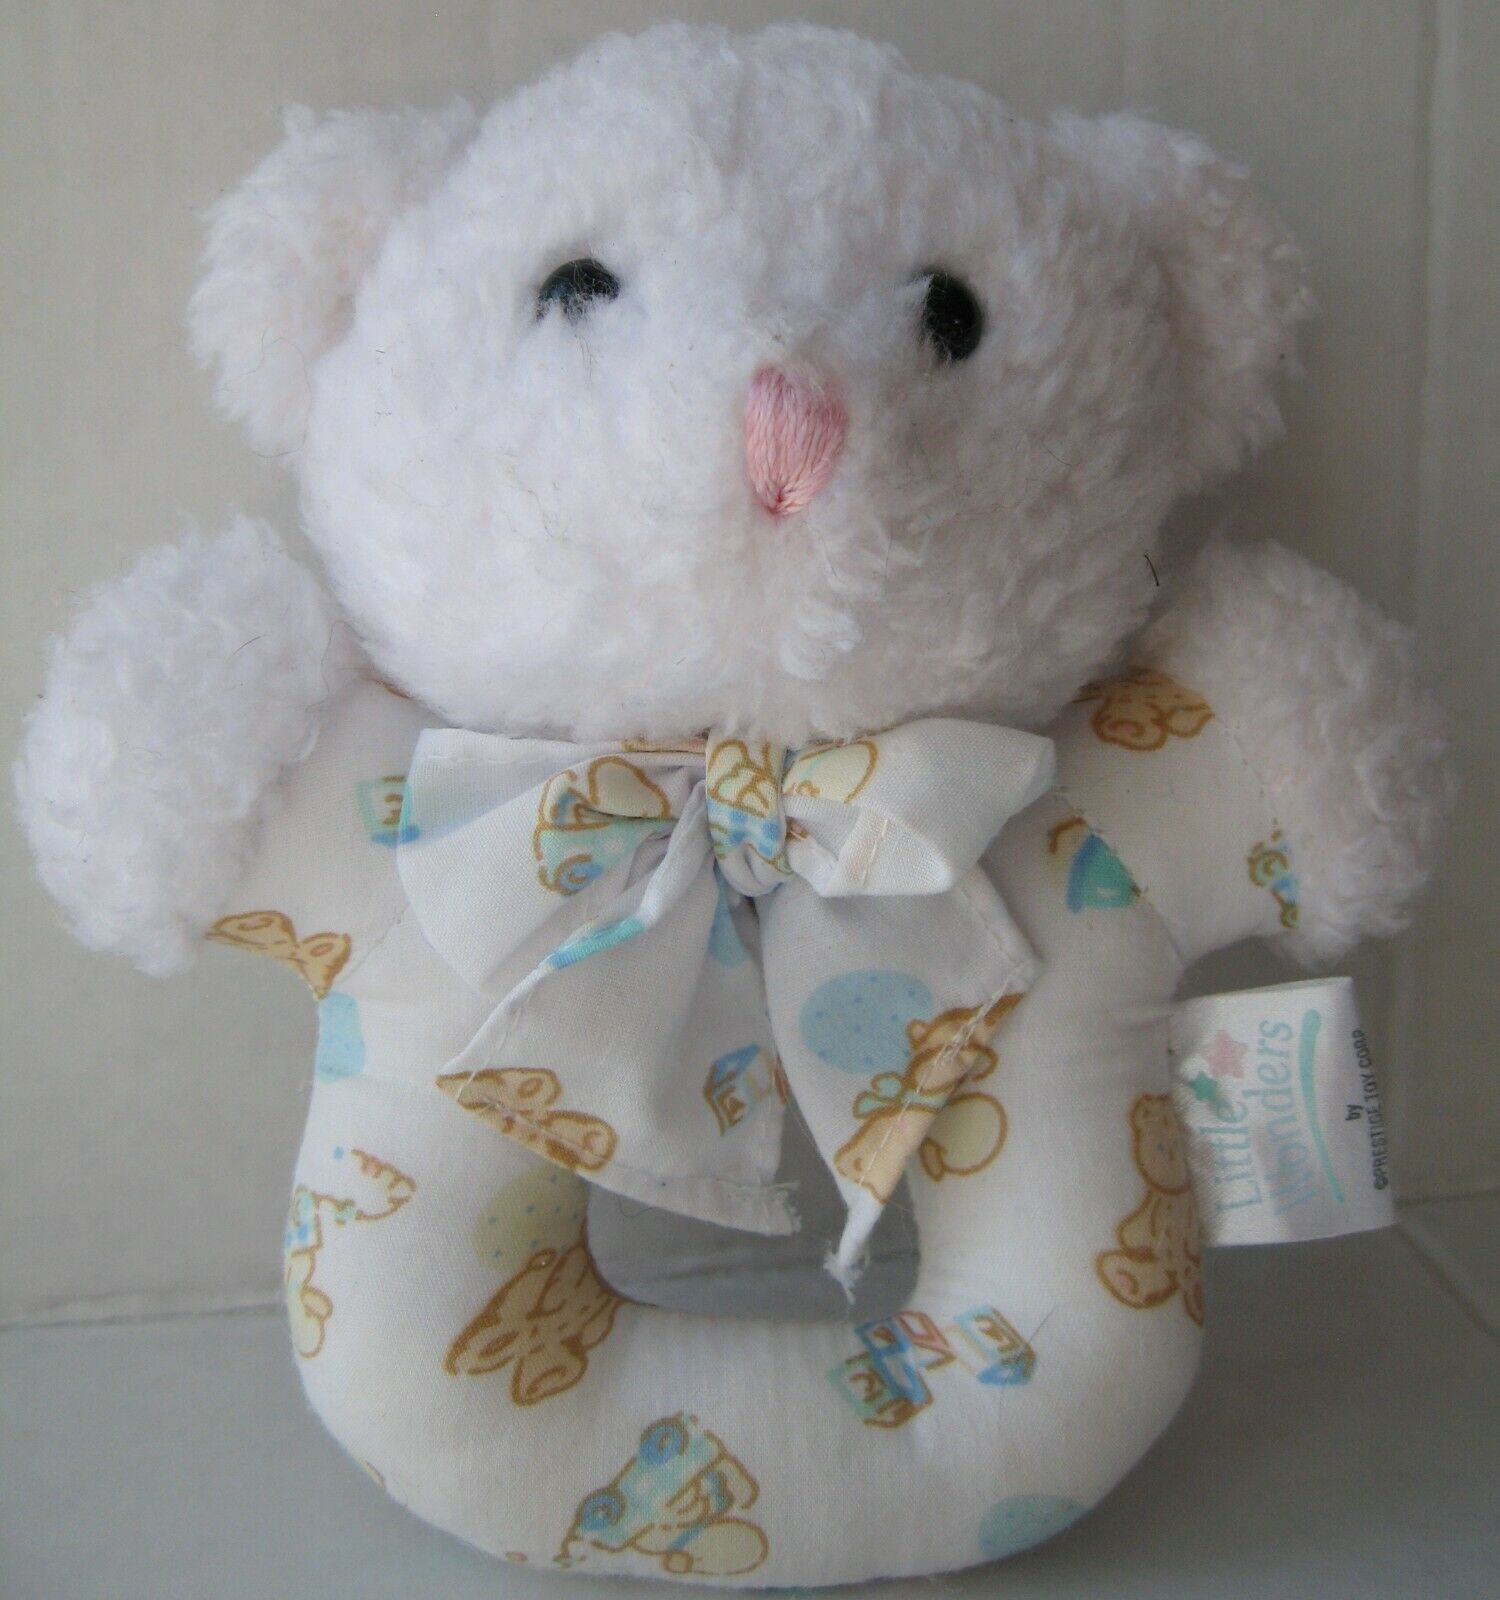 Primary image for Little Wonders Prestige Baby Rattle Plush Toy White Teddy Bear Pastel Ducks Vtg